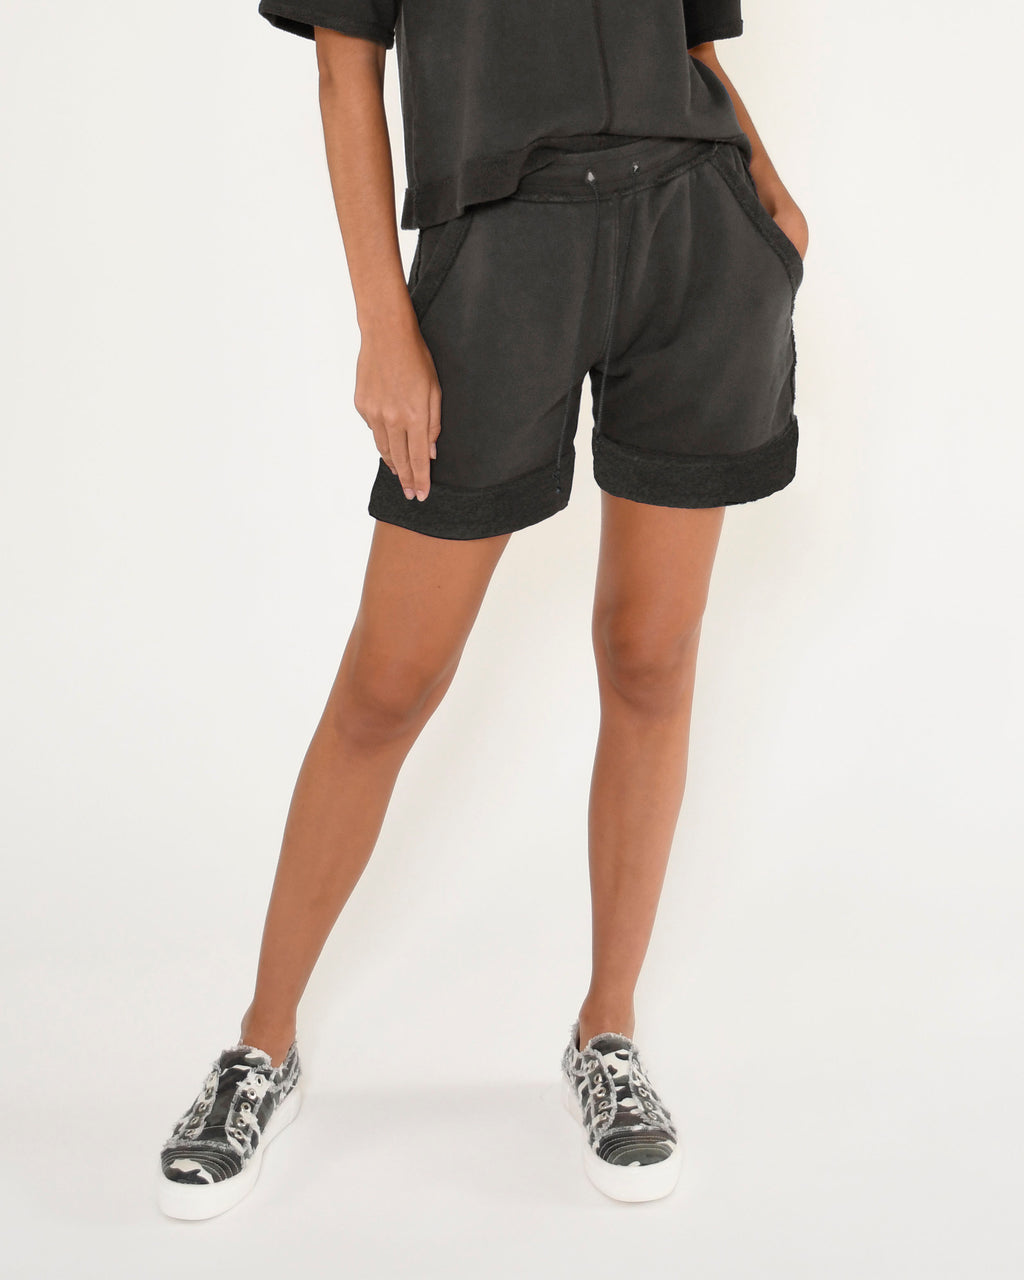 CP18800 - TERRY SHORT - bottoms - shorts - Our slate gray terry shorts feature a monochrome evil eye, side pockets and a drawstring waist. Add 1 line break Stylist Tip: Pair with a white tee or the coordinating top.